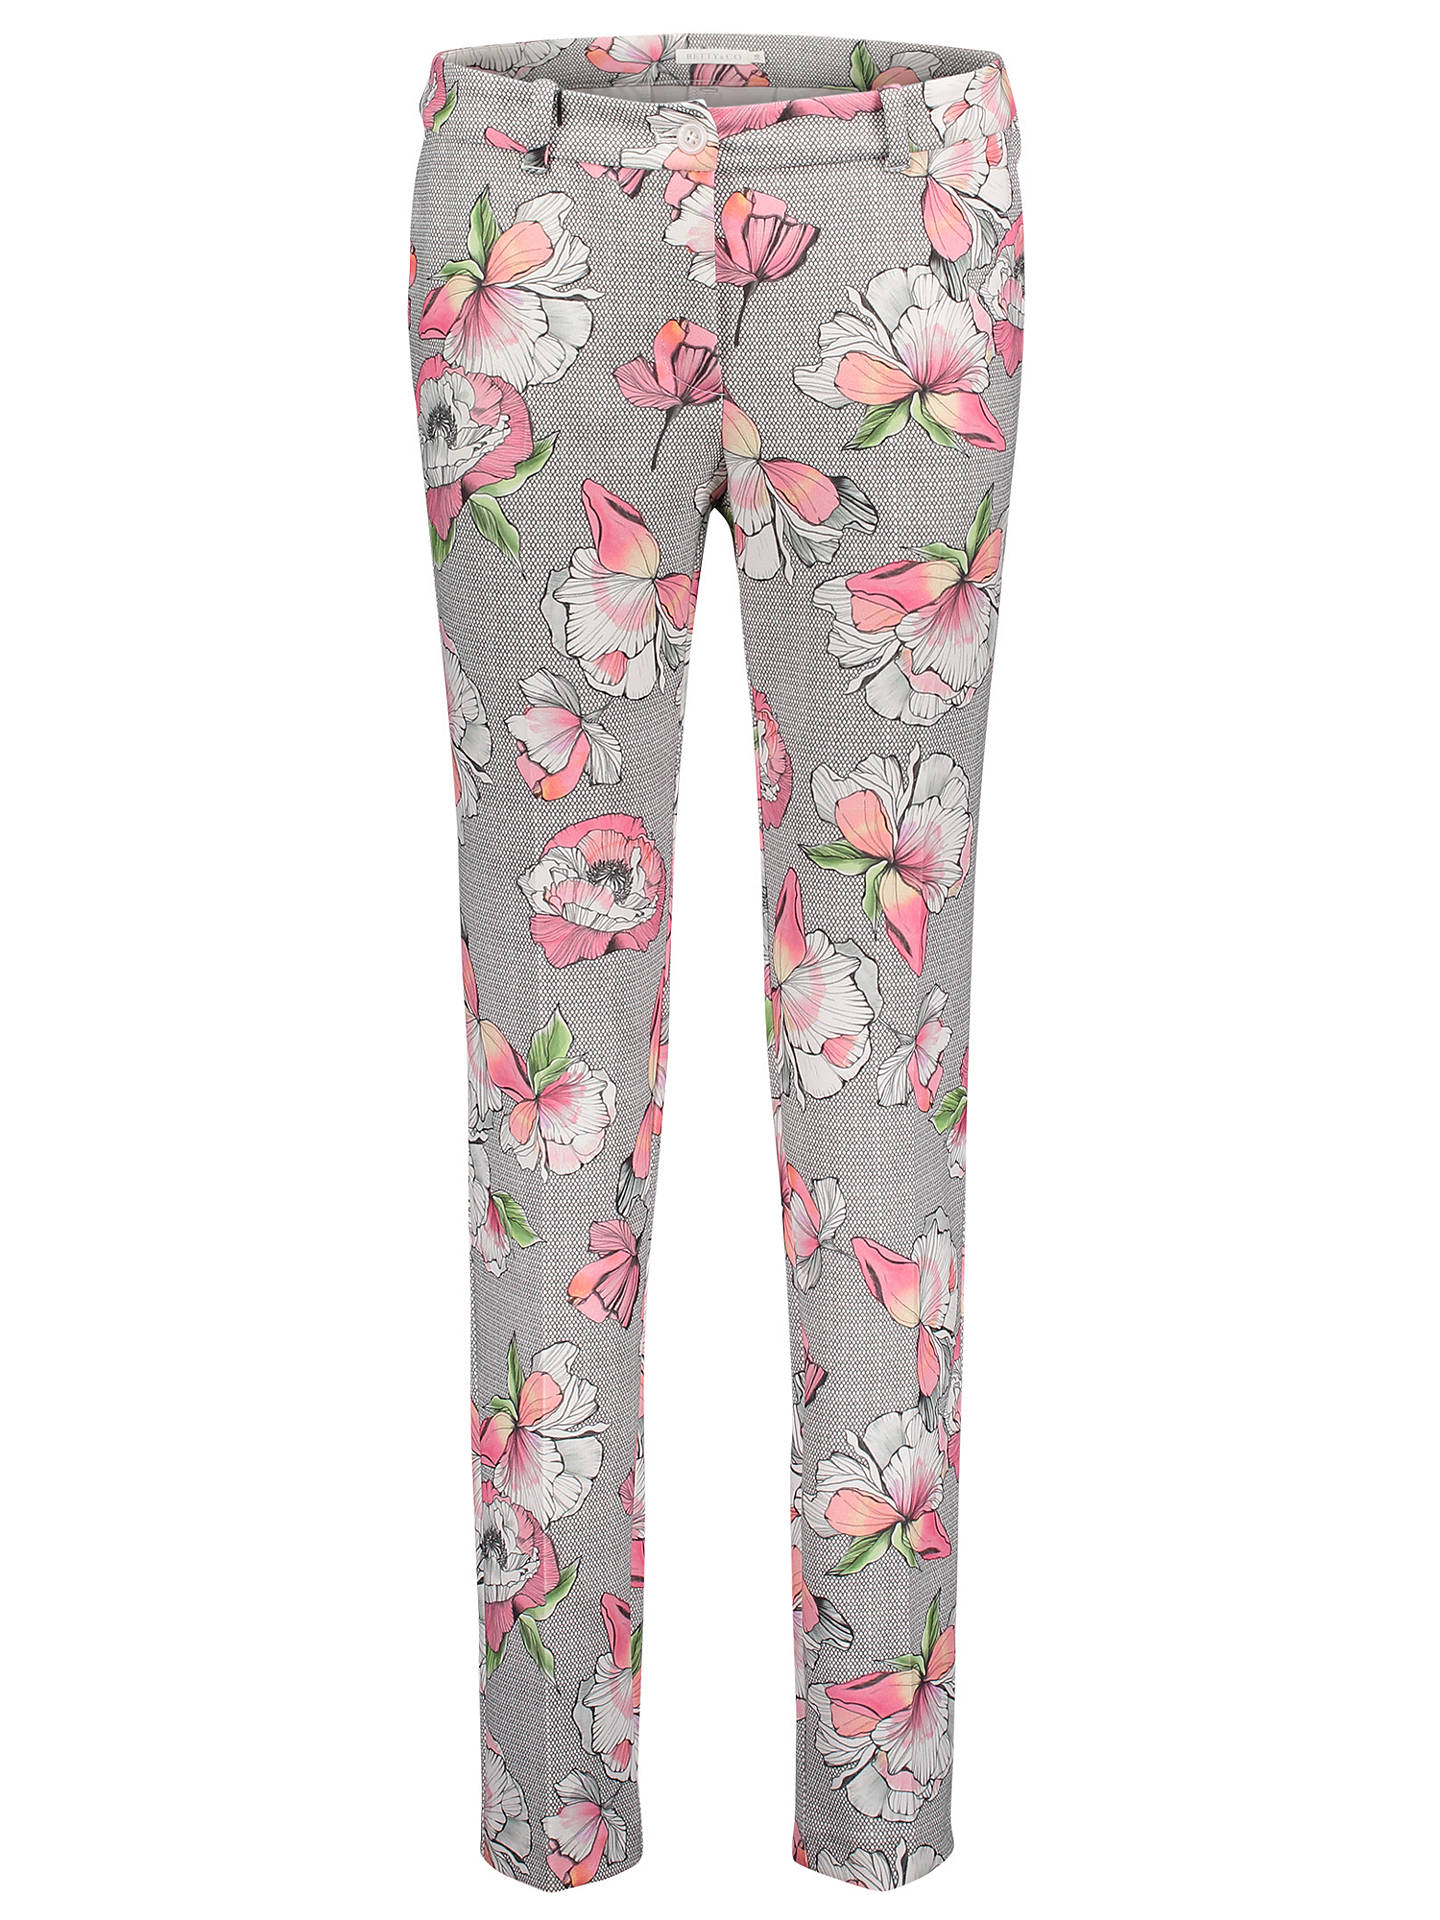 Buy Betty & Co. Floral And Mesh Print Trousers, Grey/Pink, 10 Online at johnlewis.com